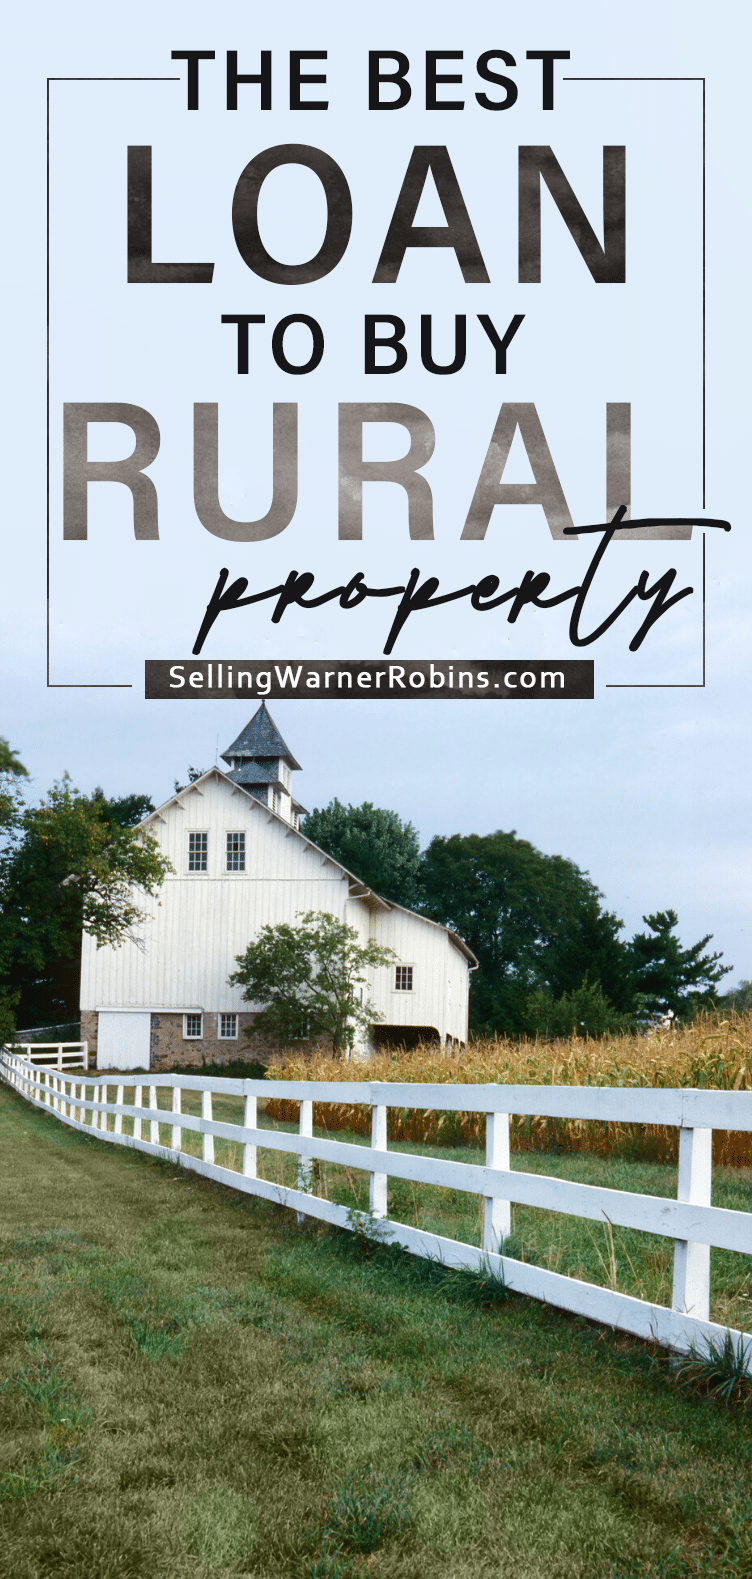 The Best Loan for Rural Property